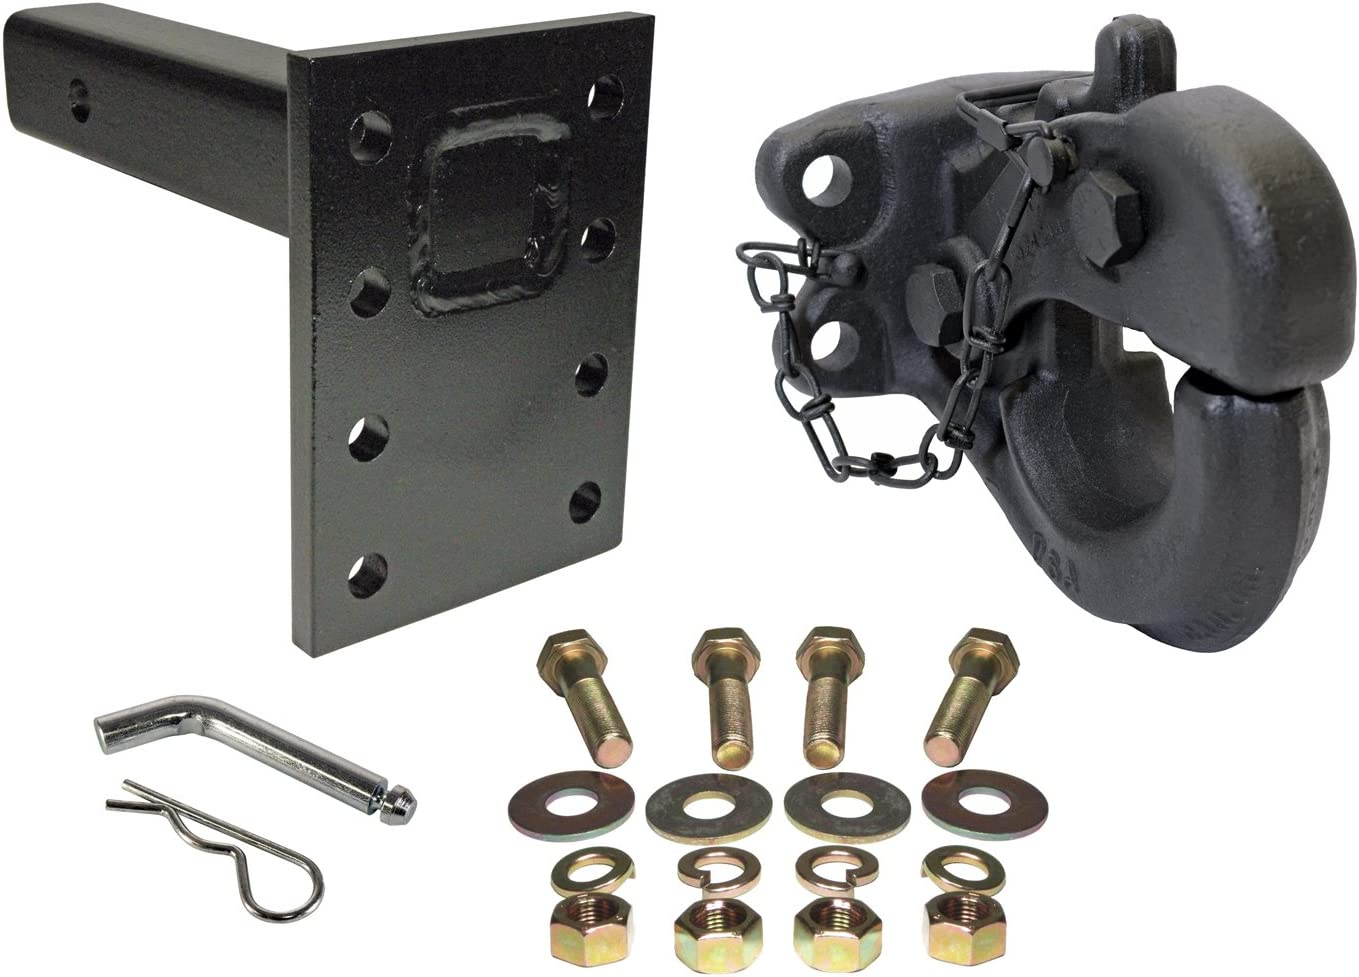 EZ Travel Collection 10,000 Pound Bolt-On Pintle Hitch Hook Hardware Included